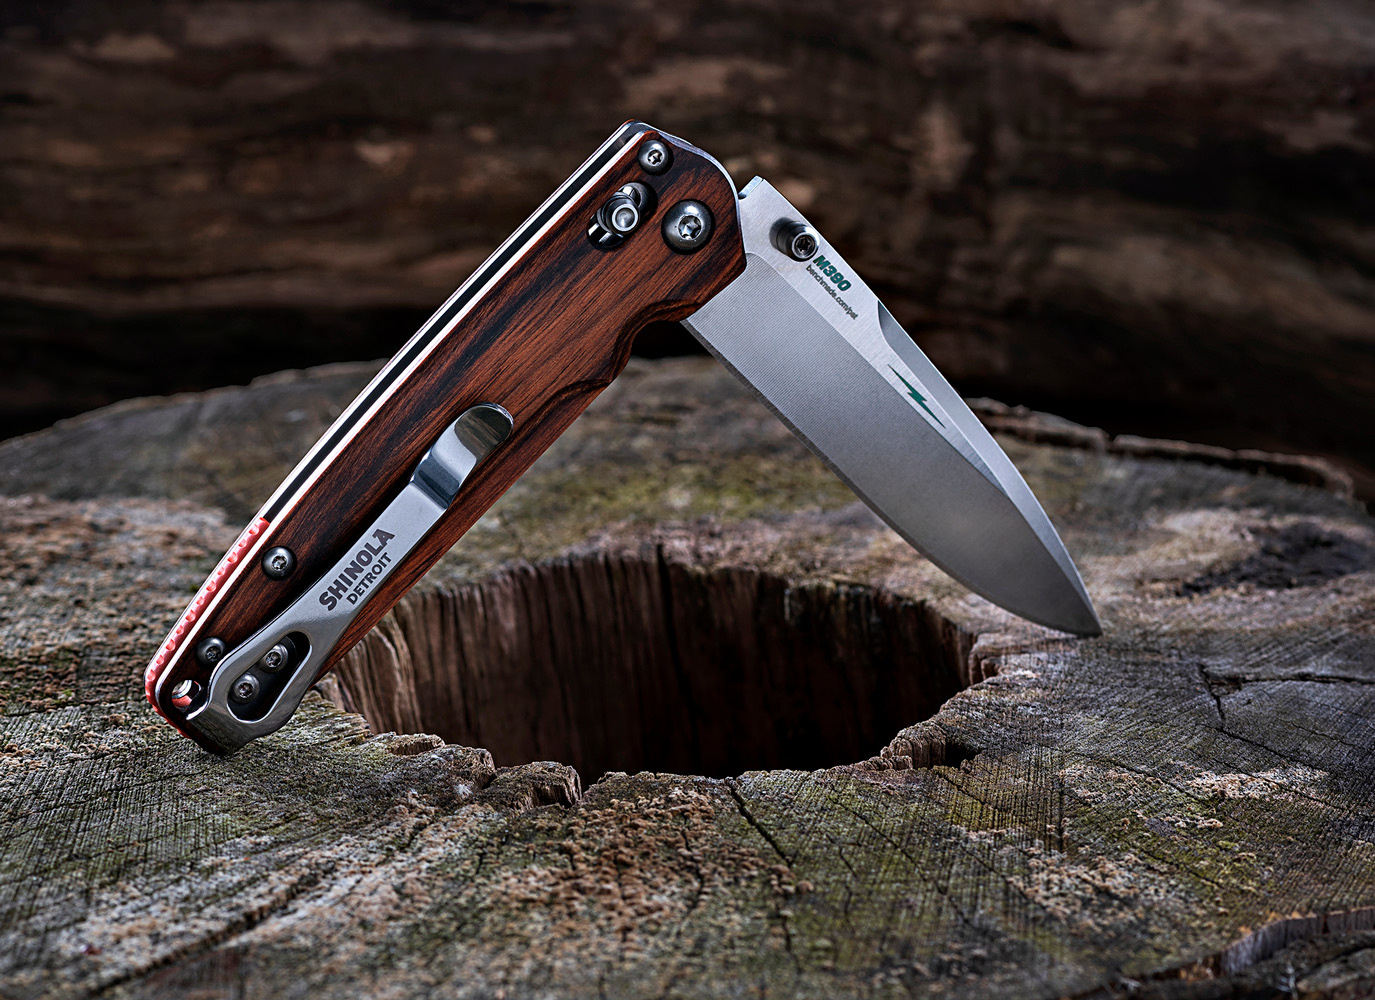 Shinola Pocket Knife by andy greenwell